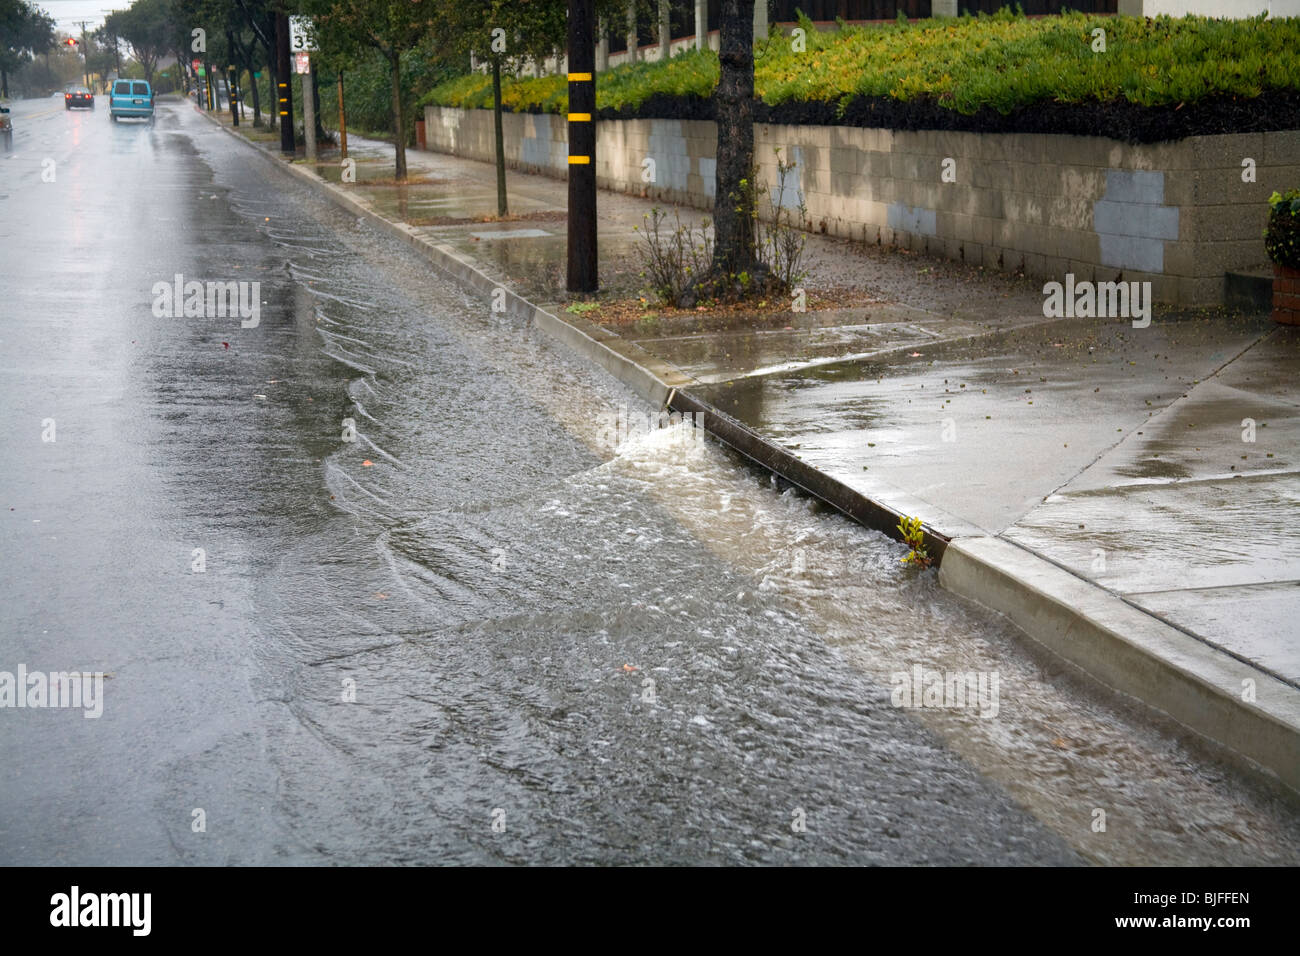 Heavy Rains Flow Down Streets Into Street Gutters And